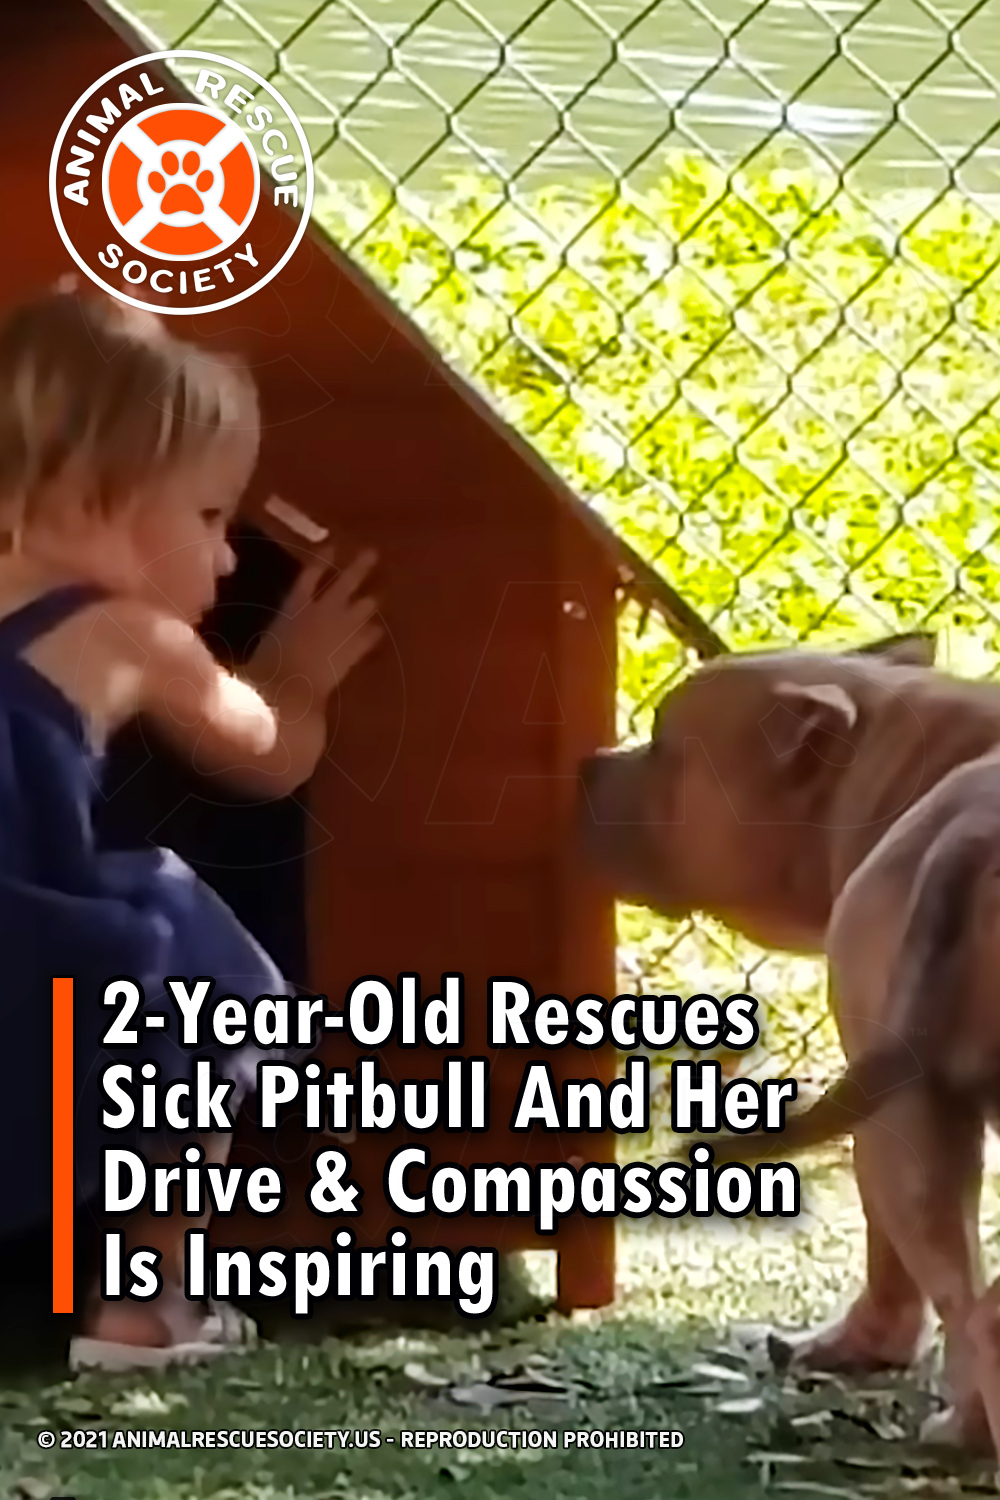 2-Year-Old Rescues Sick Pitbull And Her Drive & Compassion Is Inspiring